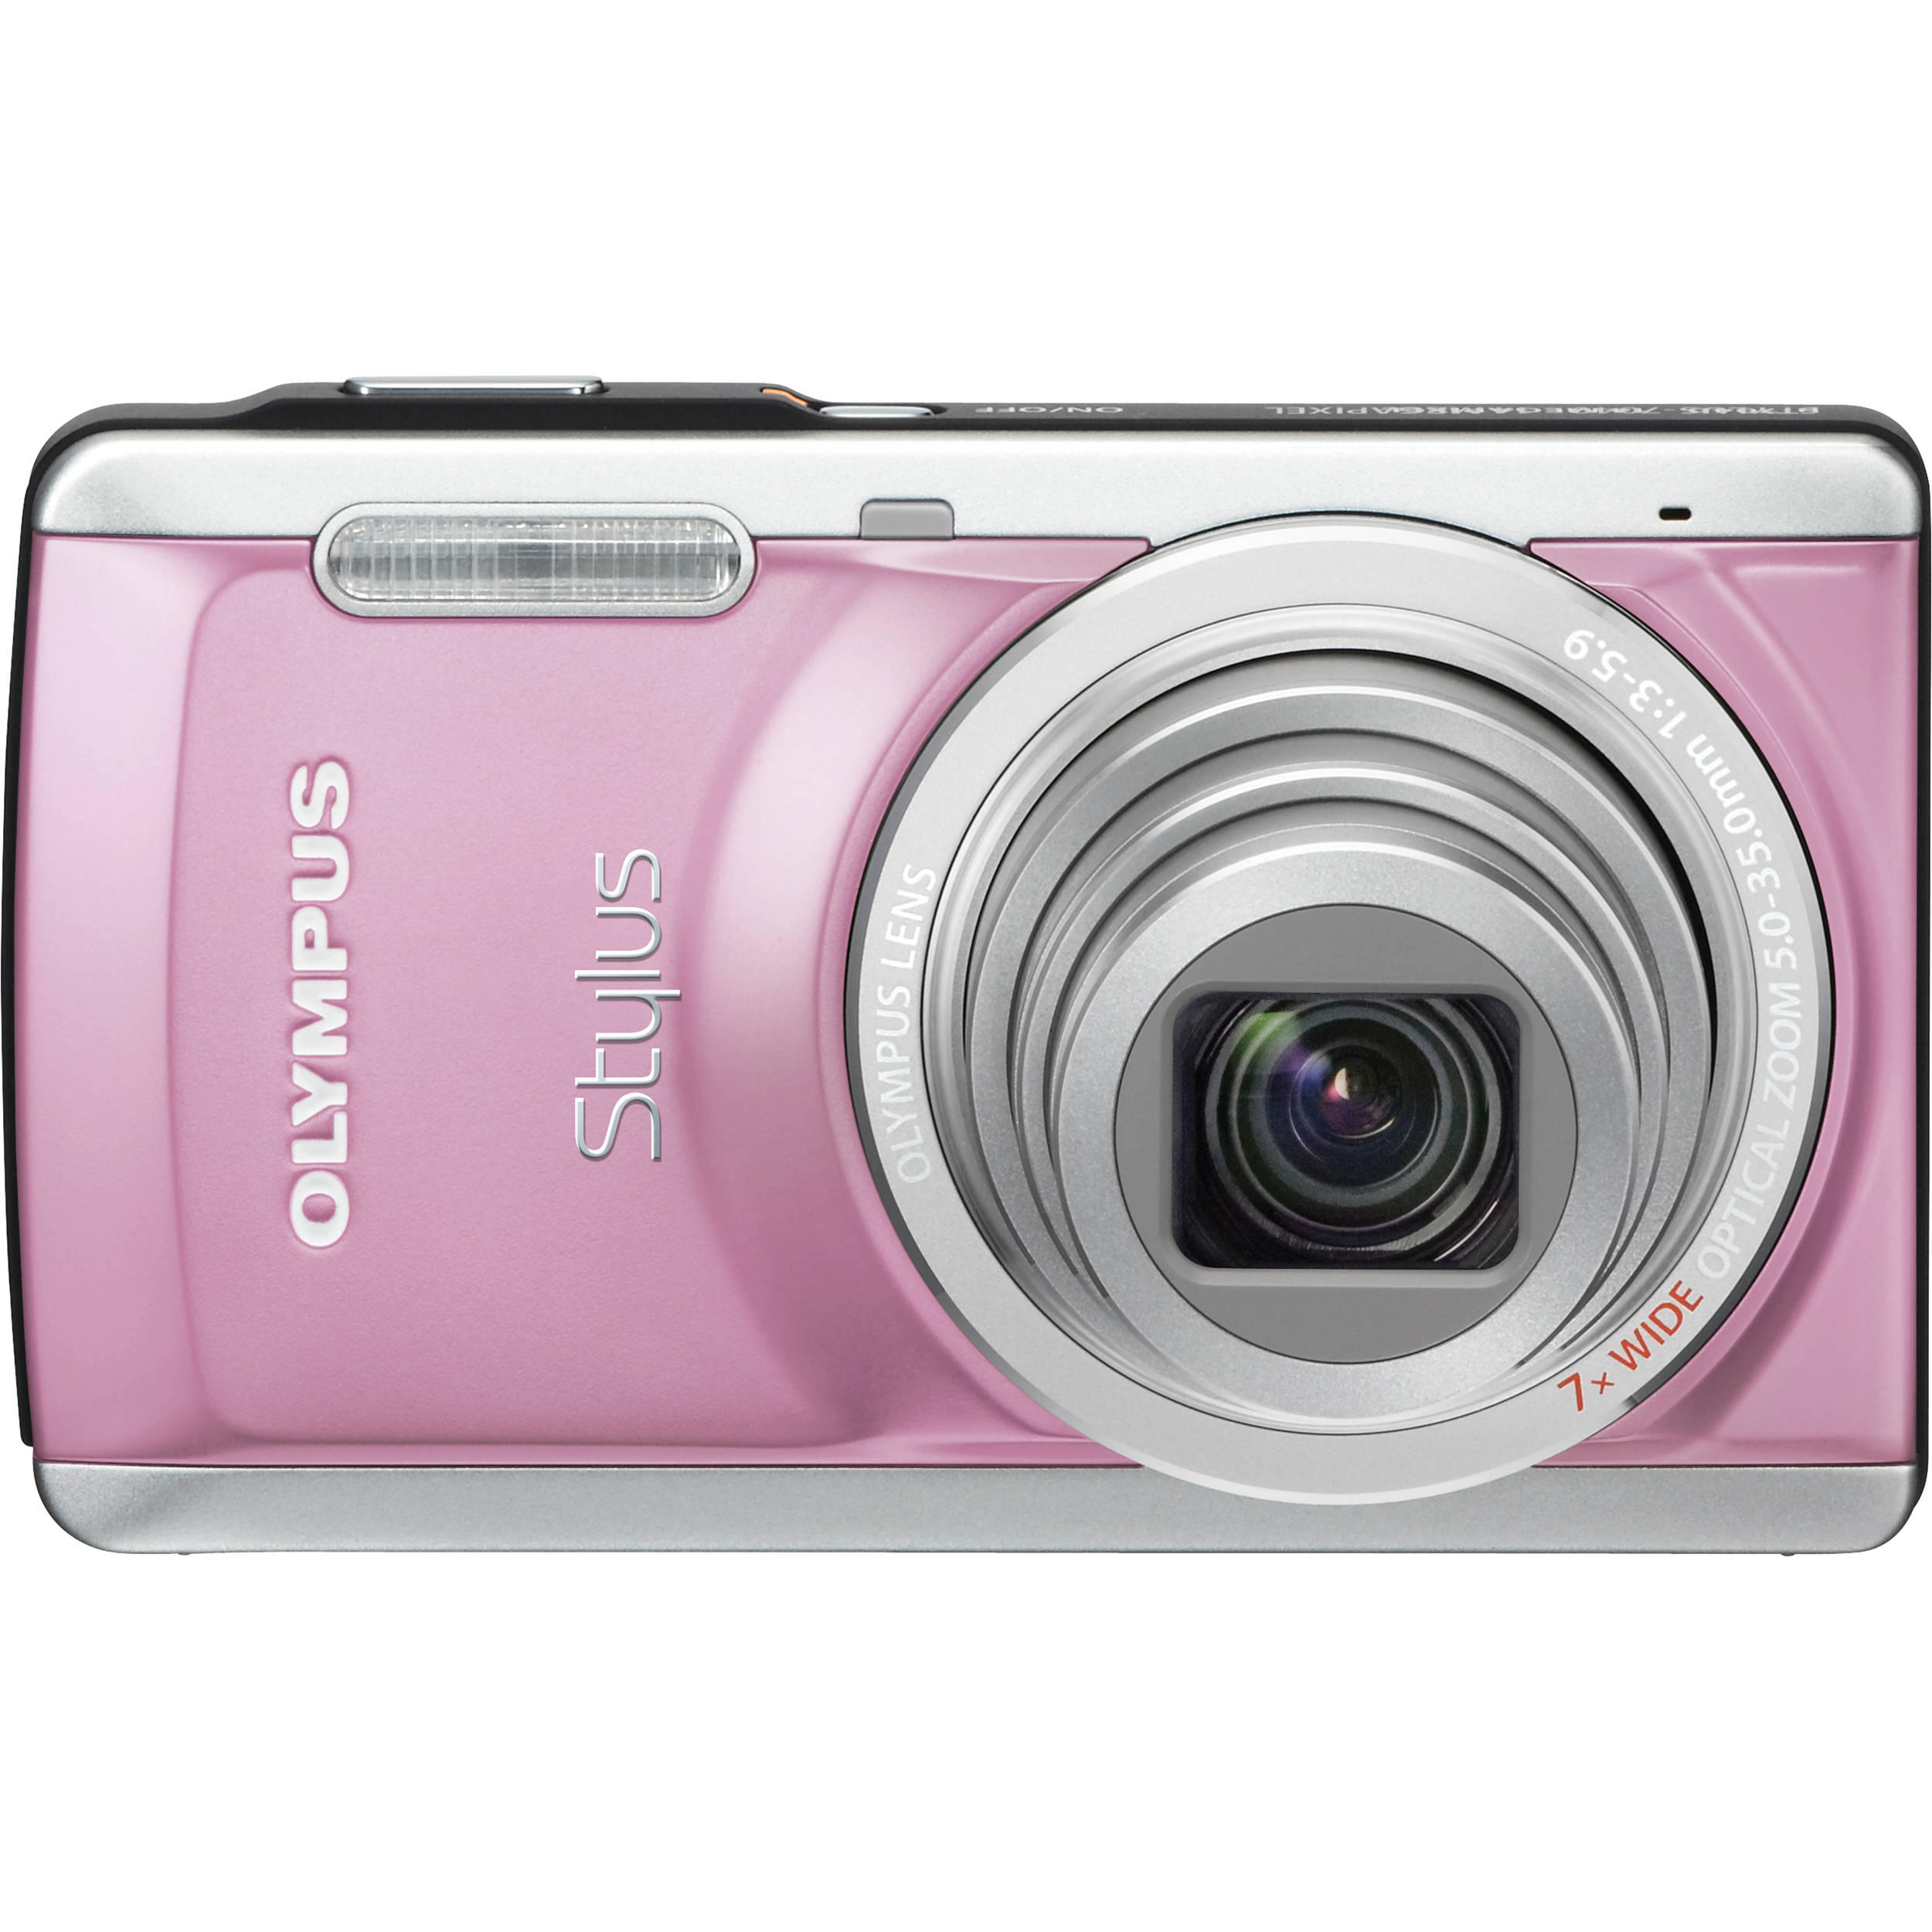 olympus stylus 7040 digital camera pink 227595 b h photo video rh bhphotovideo com Olympus Stylus 7040 14 MP Digital Camera Olympus VR-320